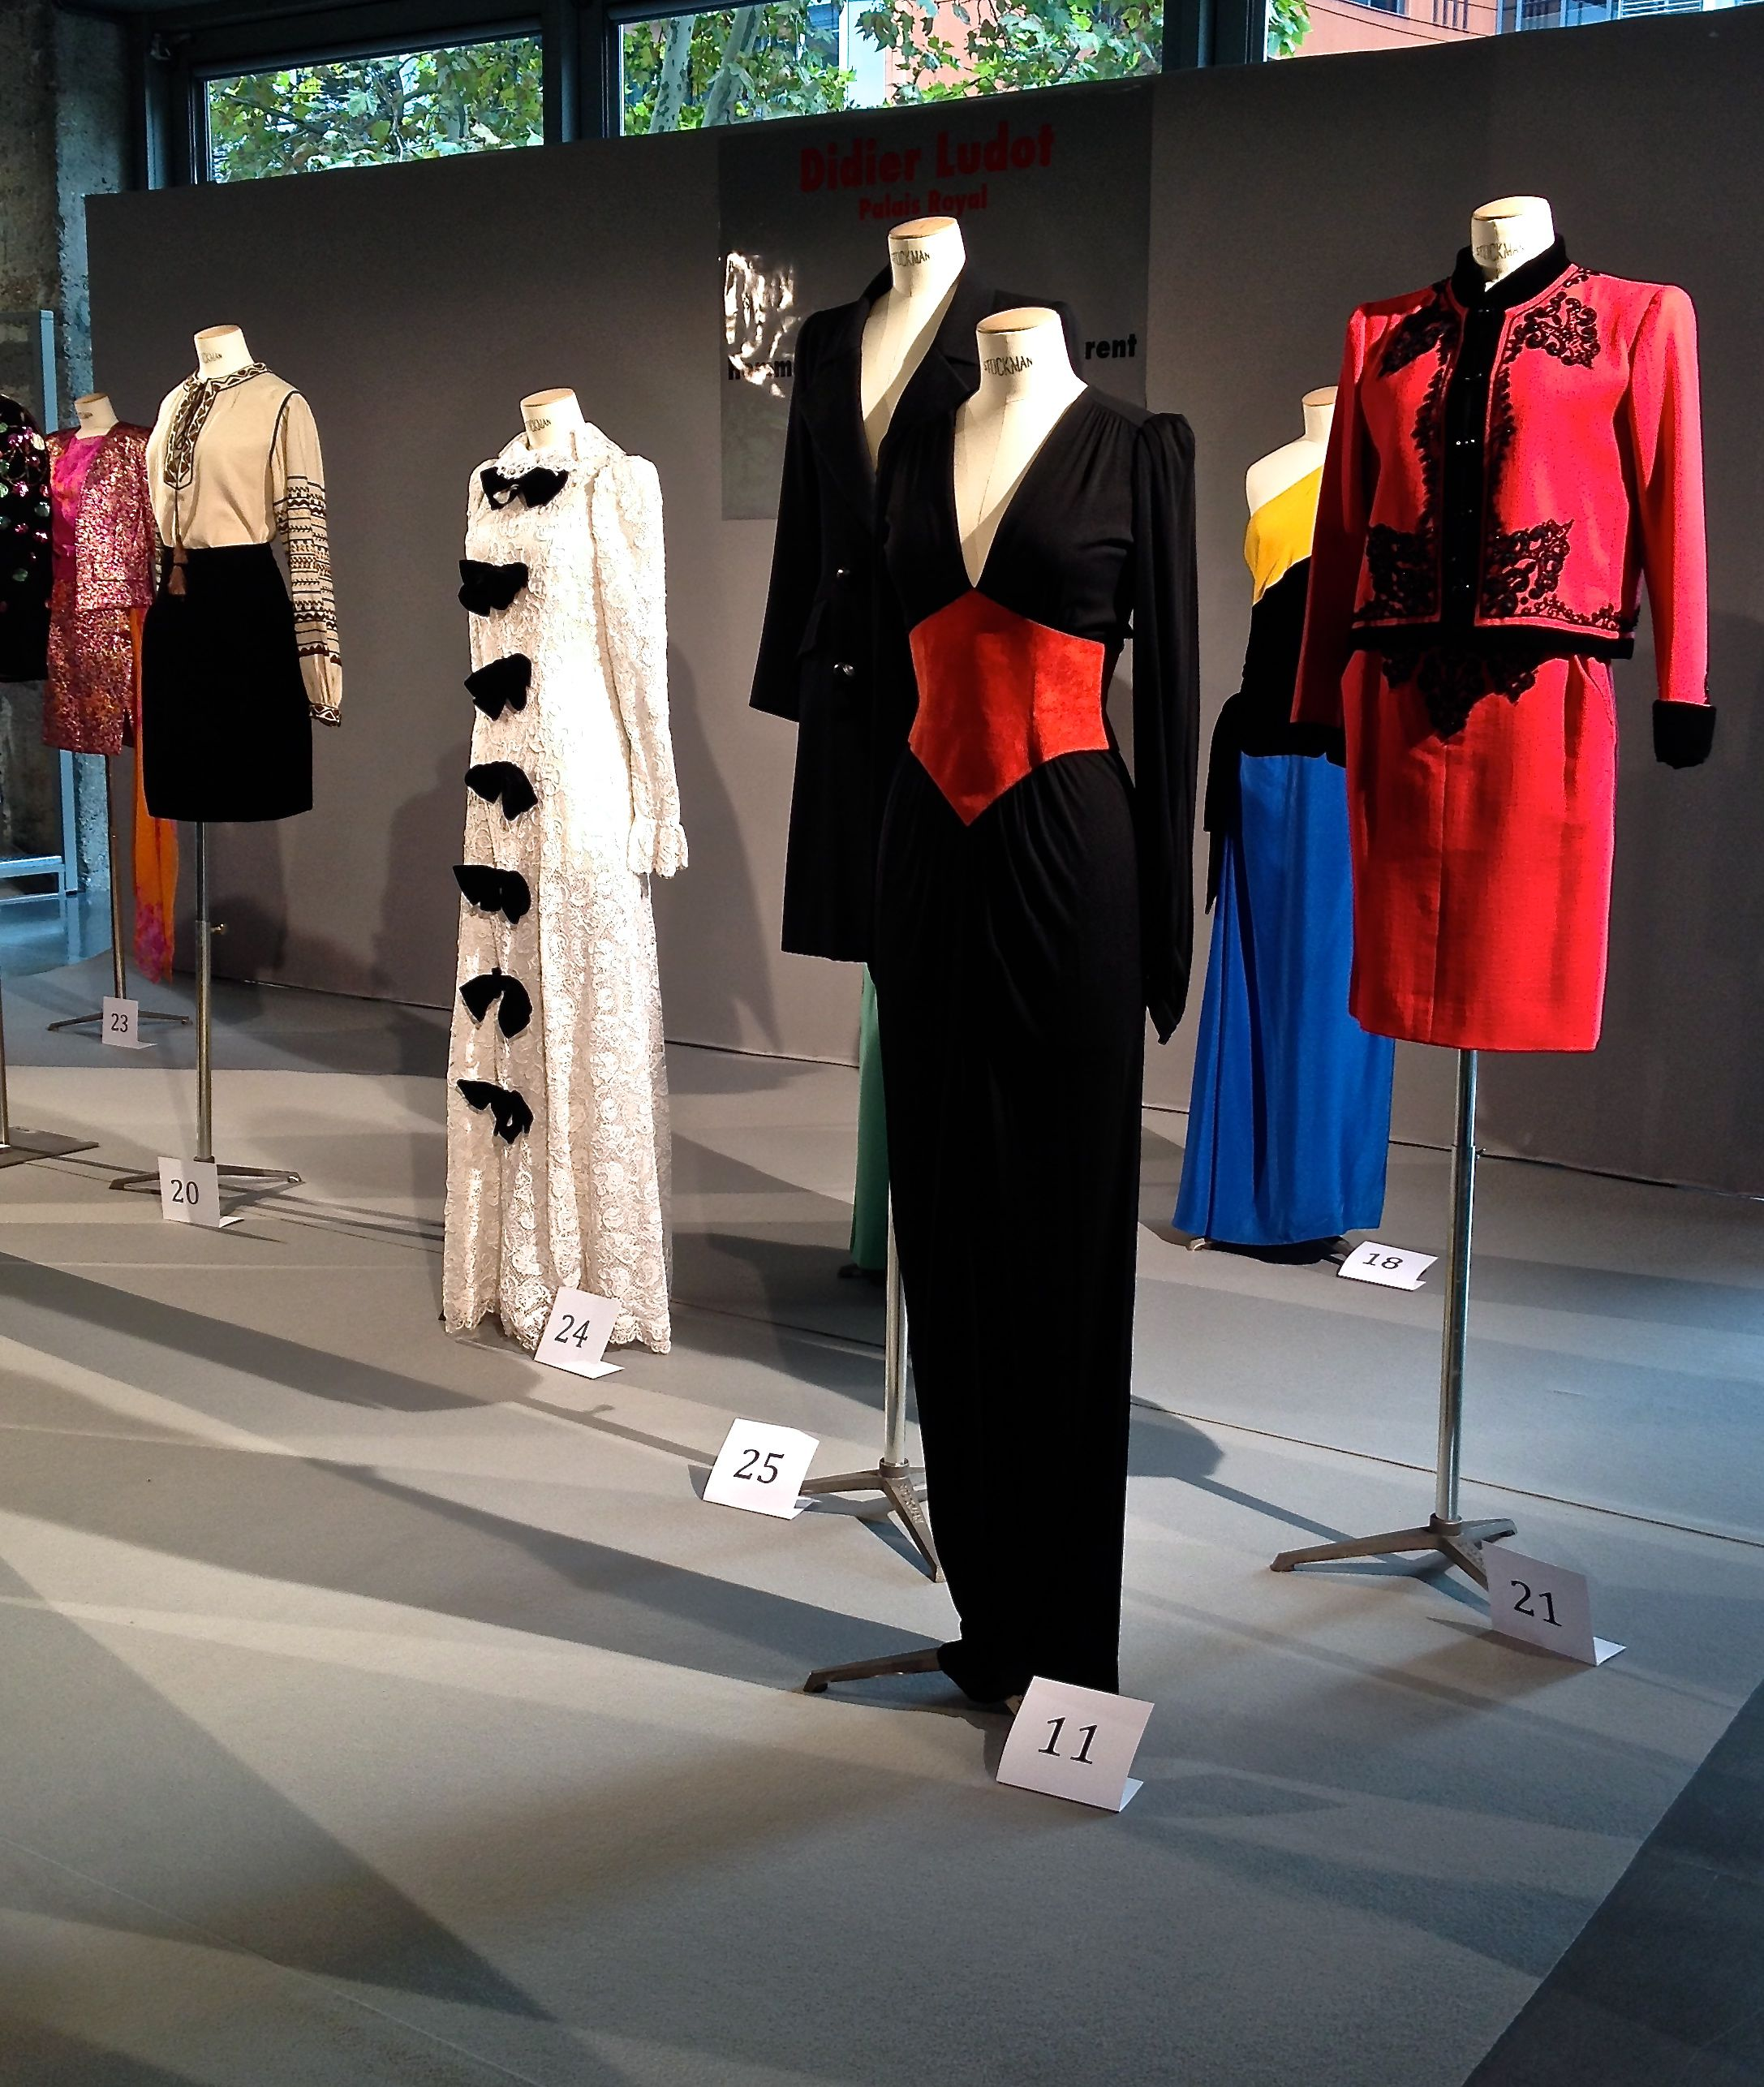 Salon Du Vintage Salon Du Vintage Ysl Haute Couture Exhibition The